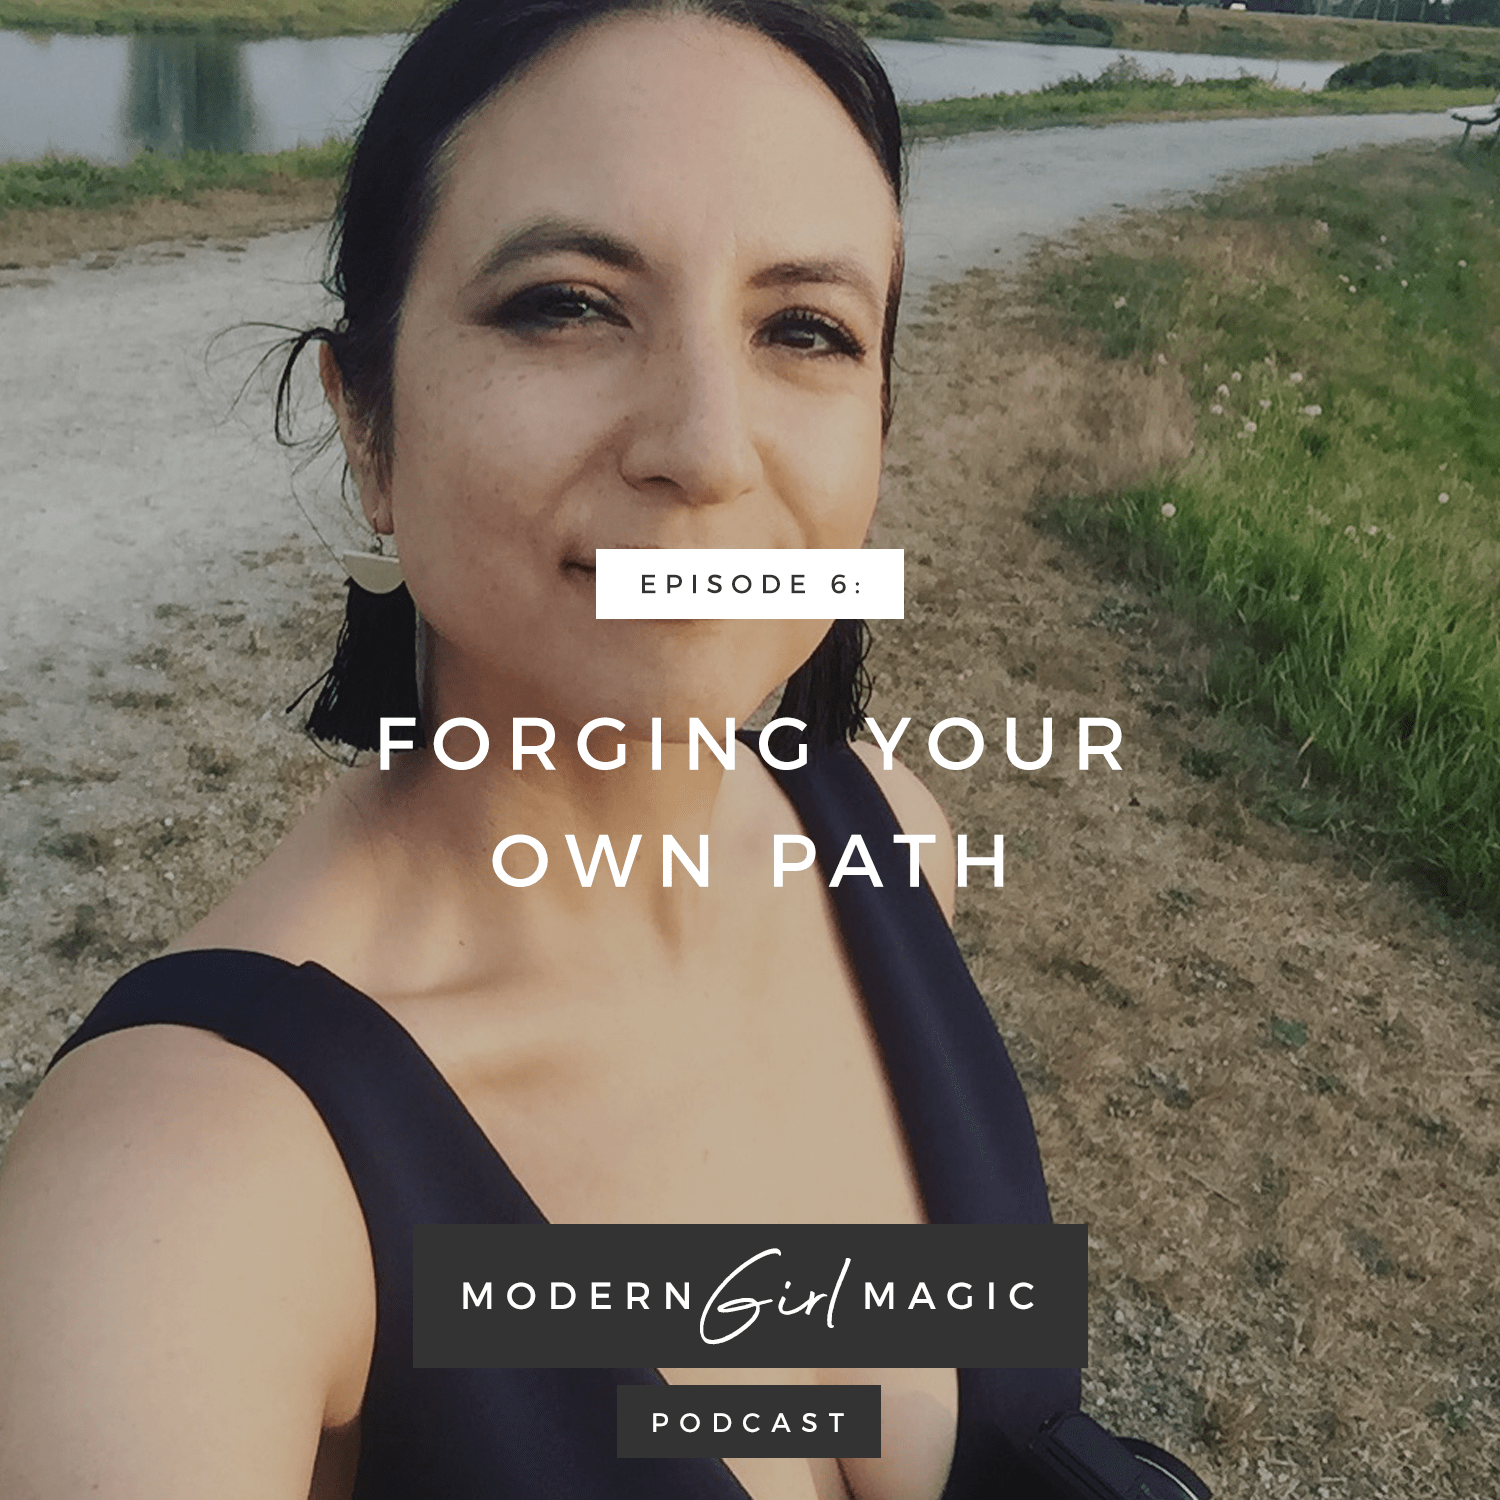 Modern Girl Magic Episode #6: Forging Your Own Path